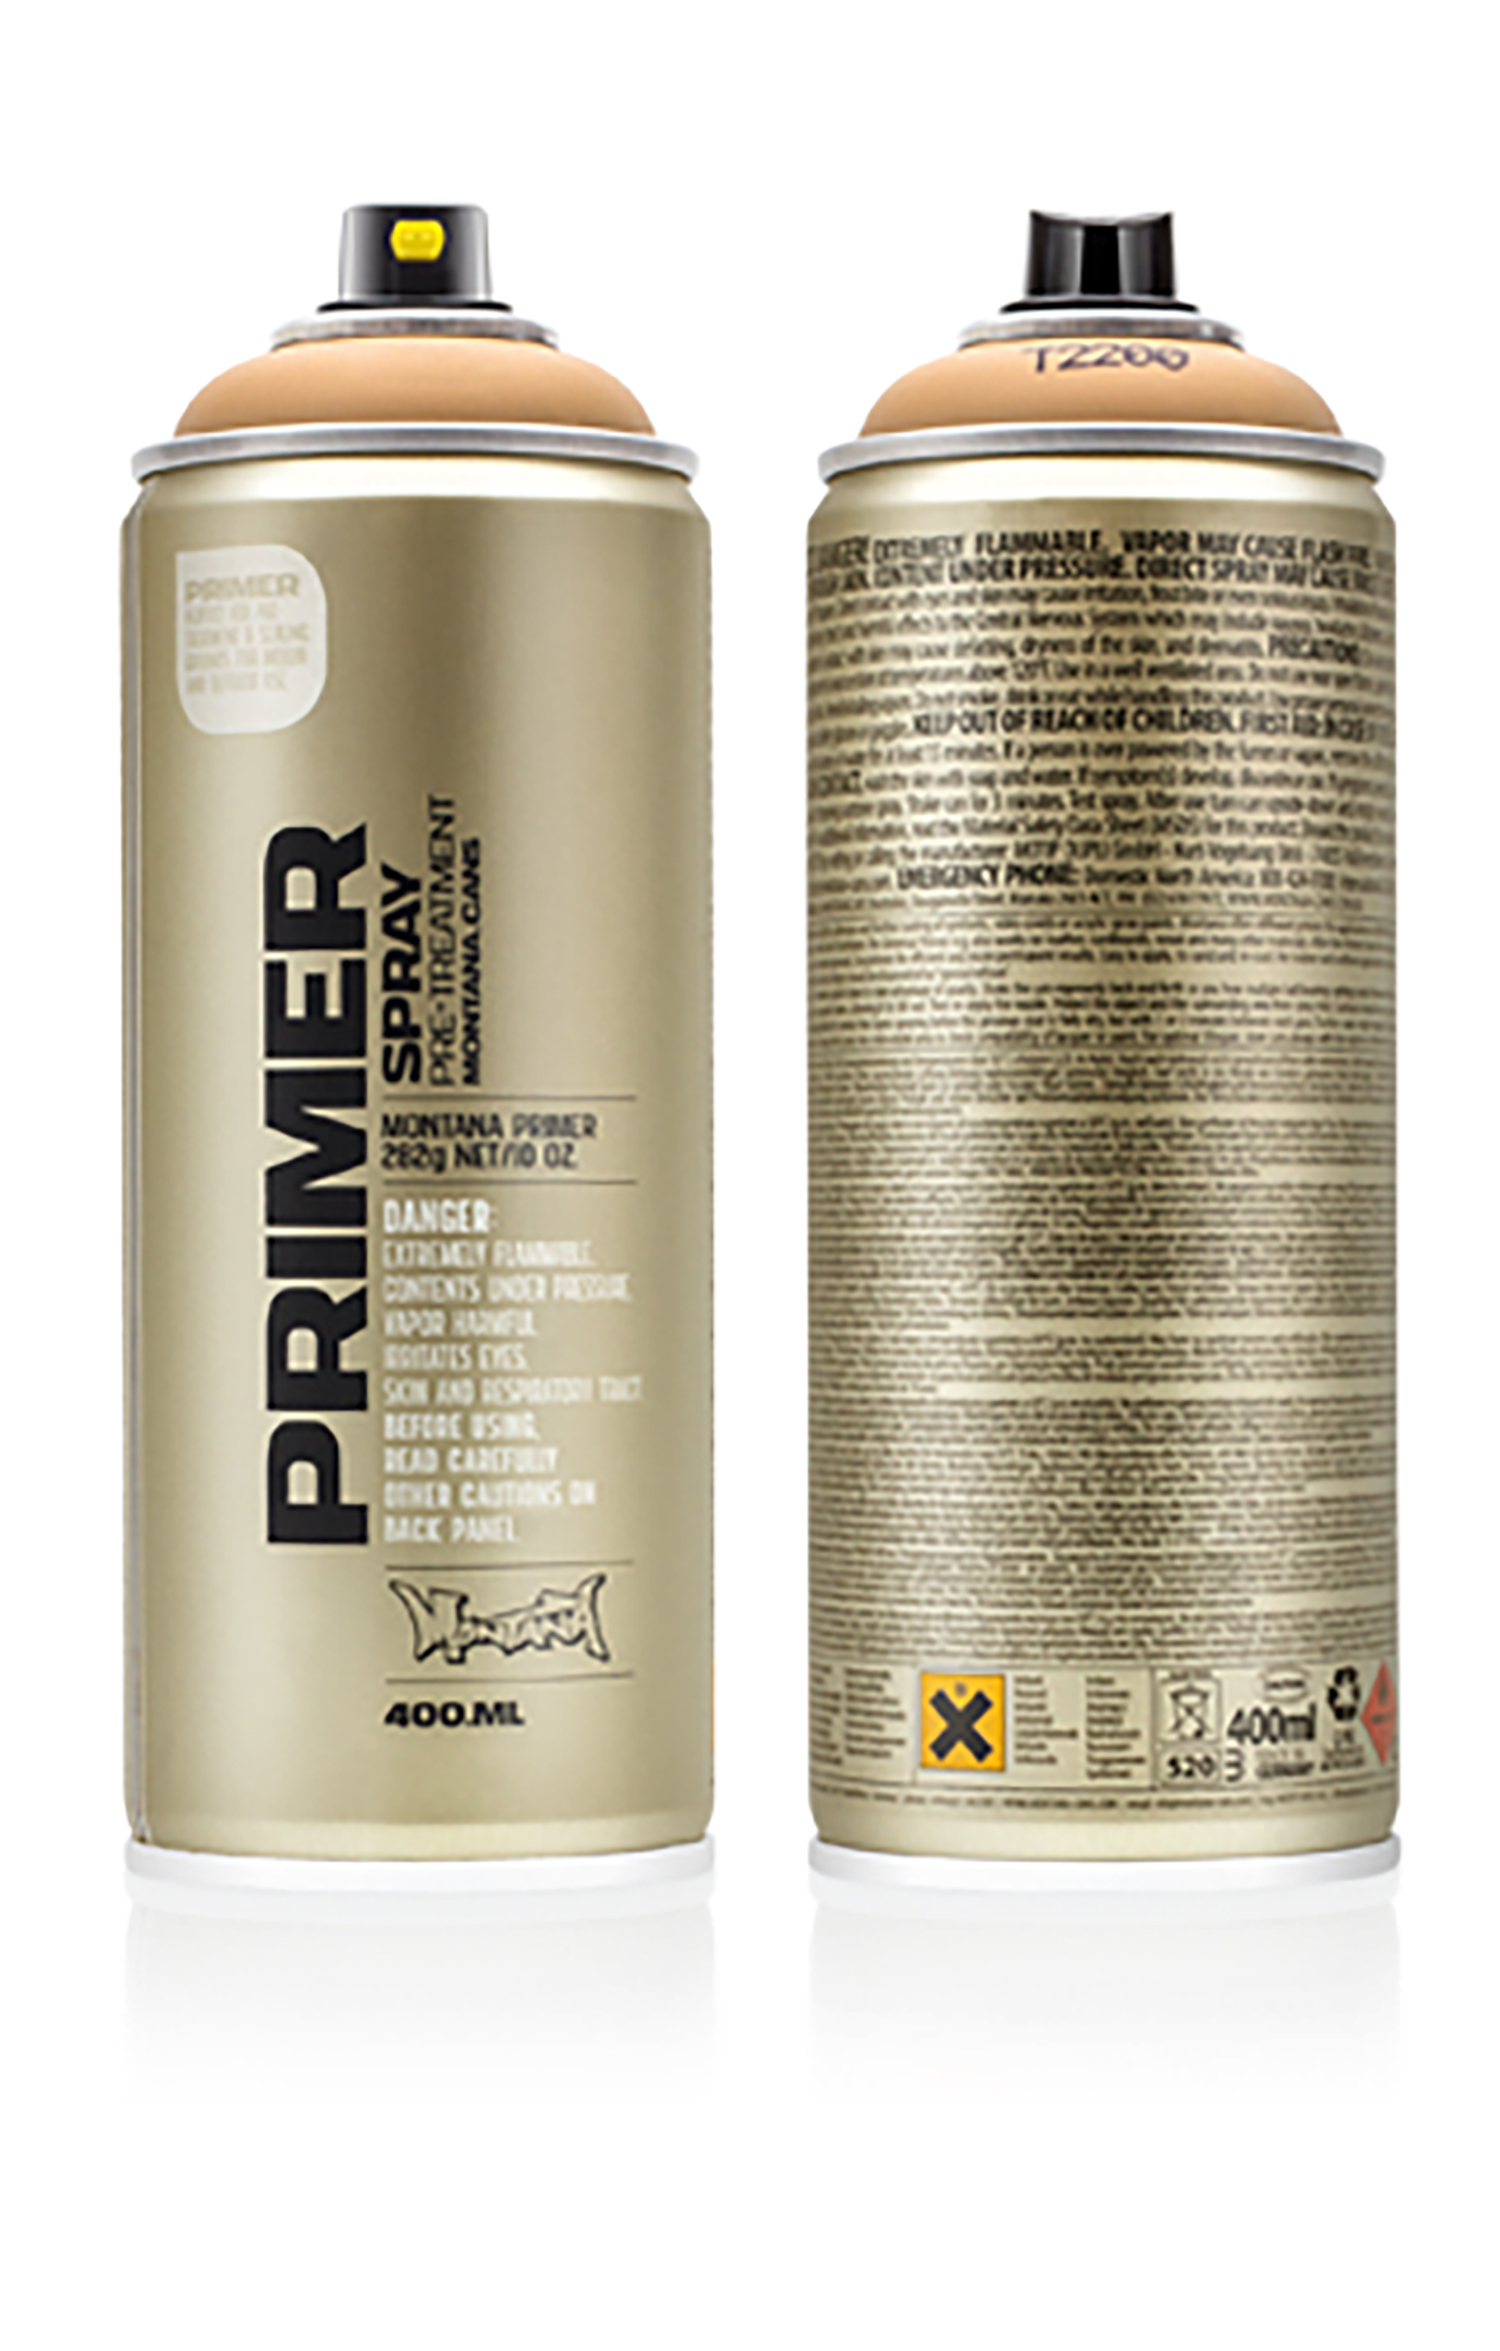 MONTANA-TECH-PRIMER-POLYSTYRENE-SPRAY-400ML